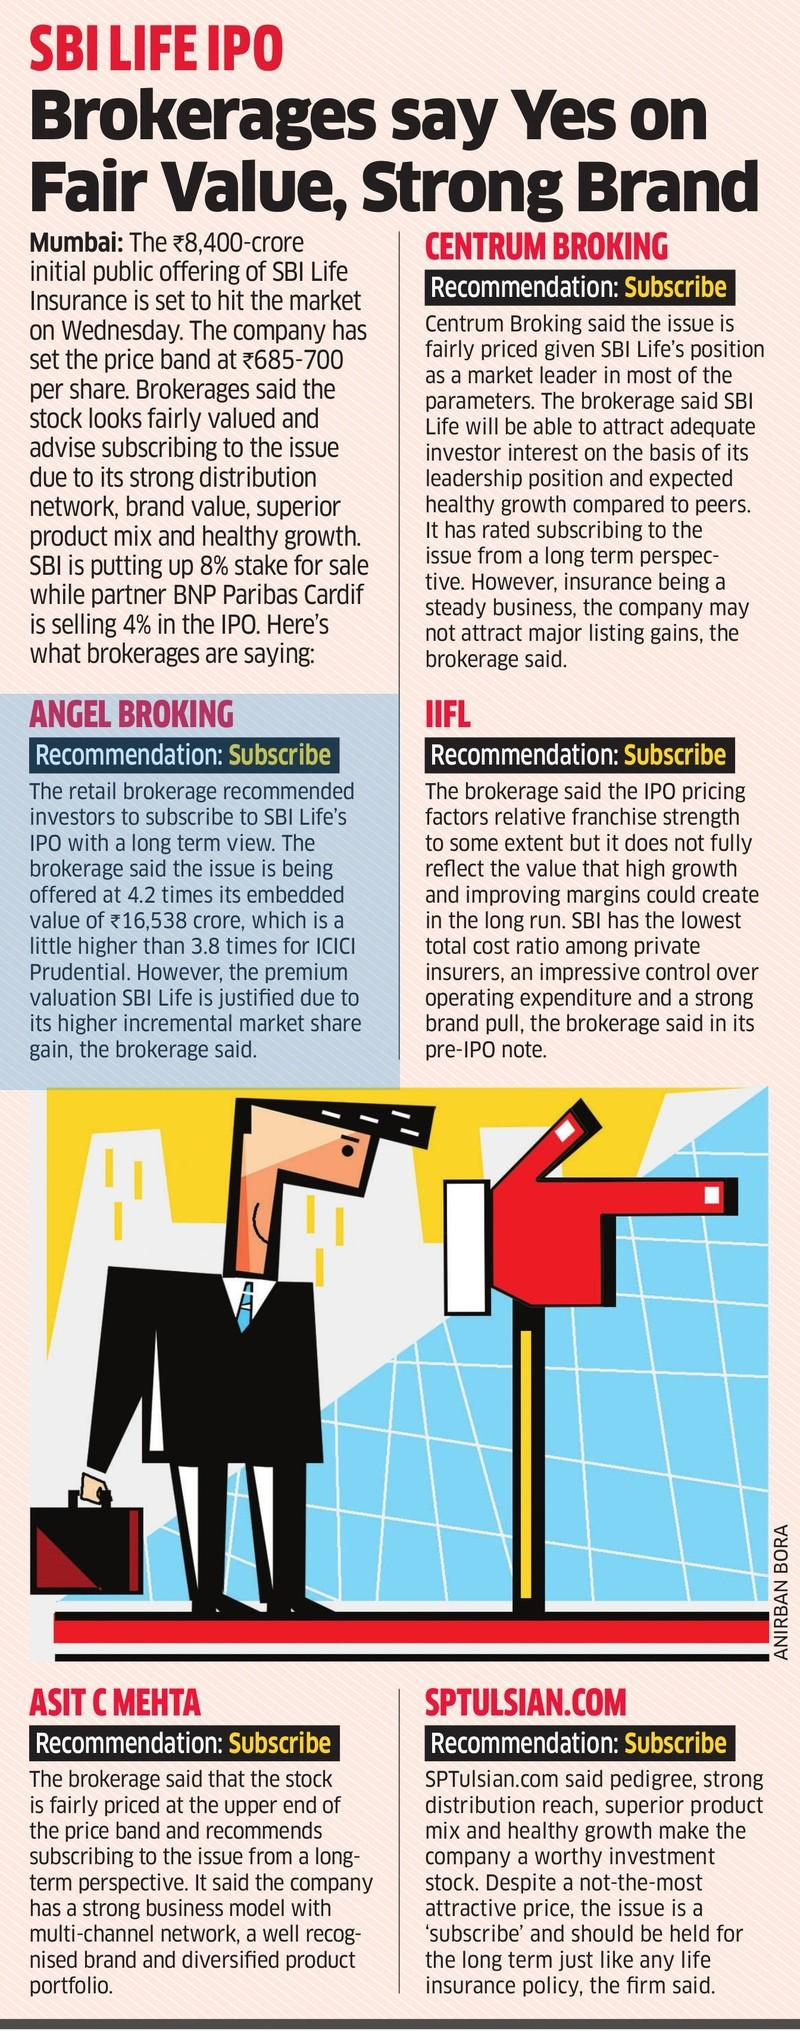 Brokerages say Yes on Fair Value, Strong Brand